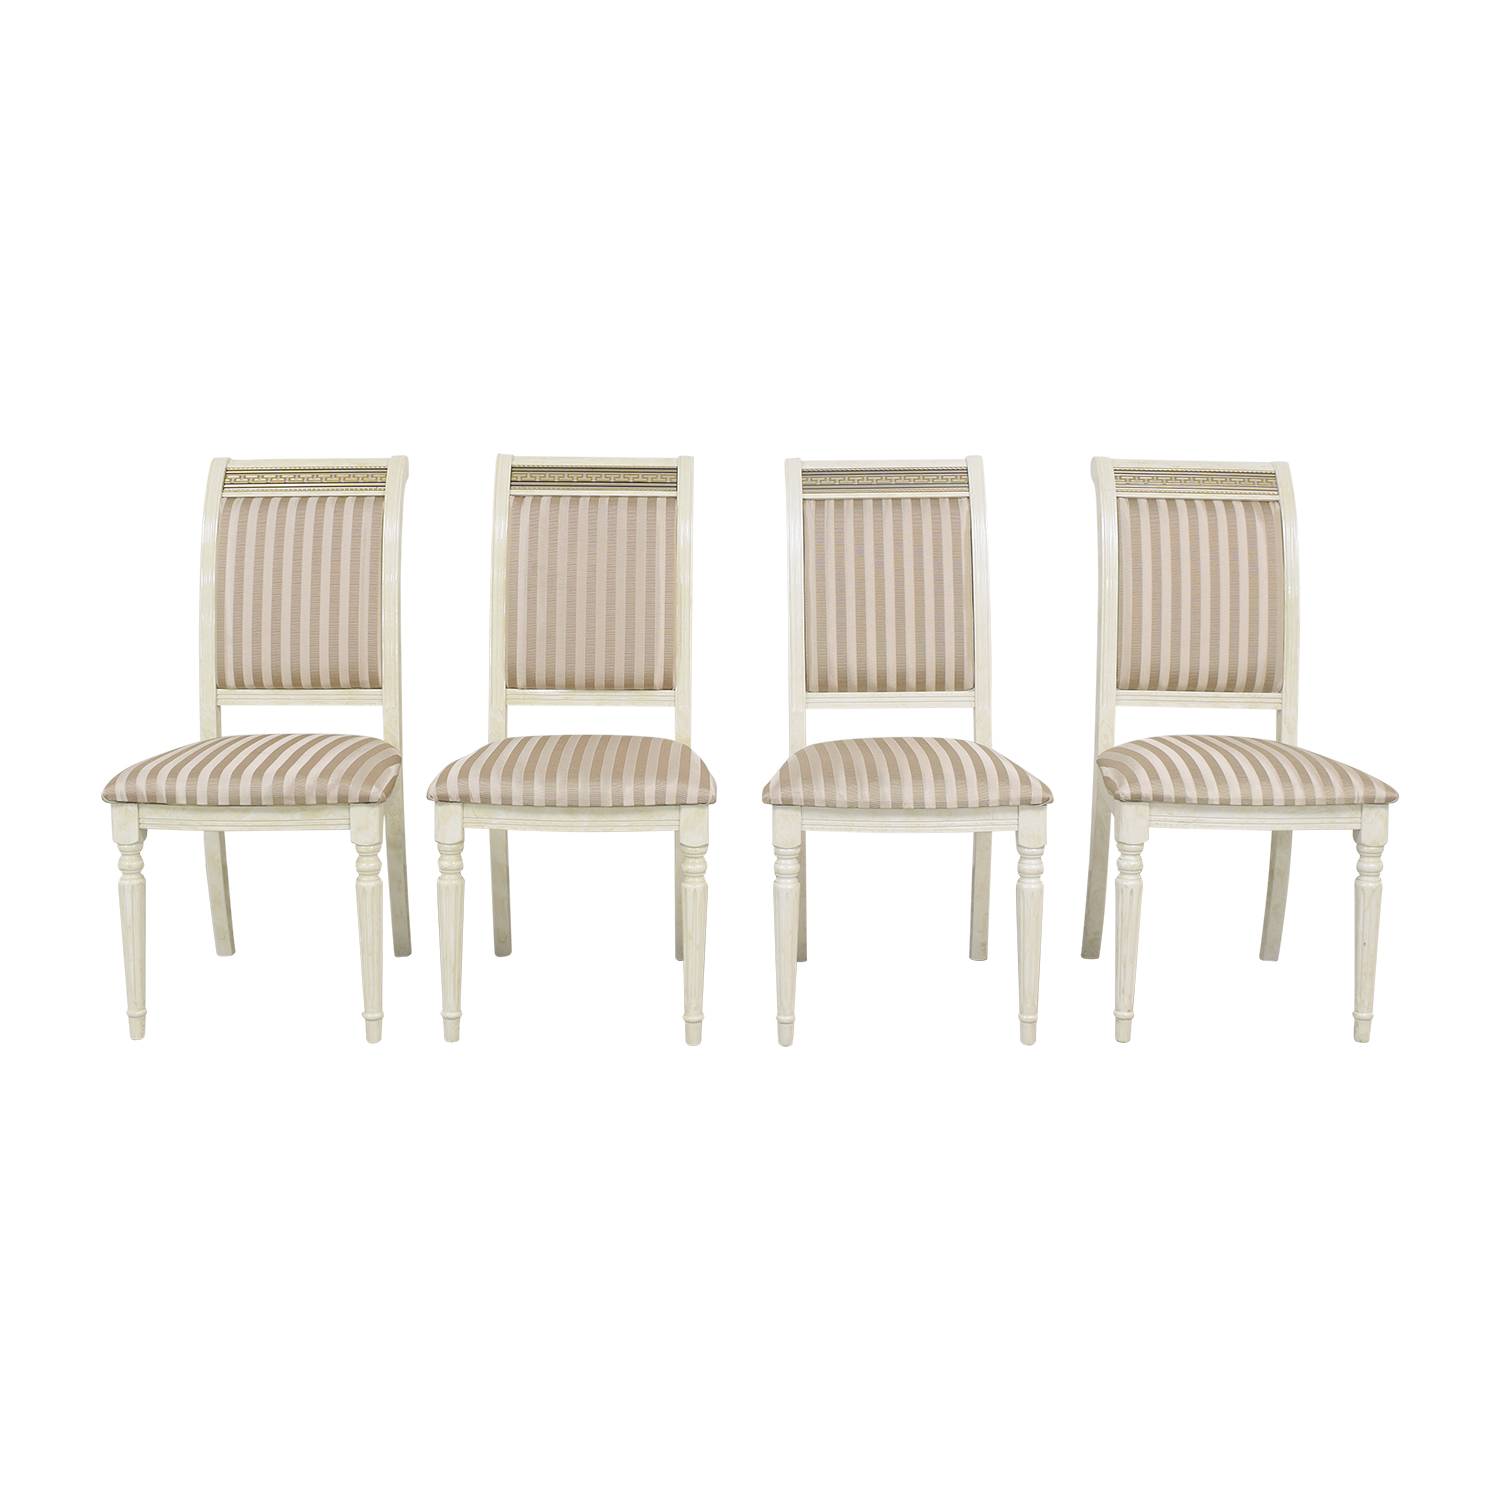 Arredoclassic Arredoclassic Liberty Dining Chairs ma